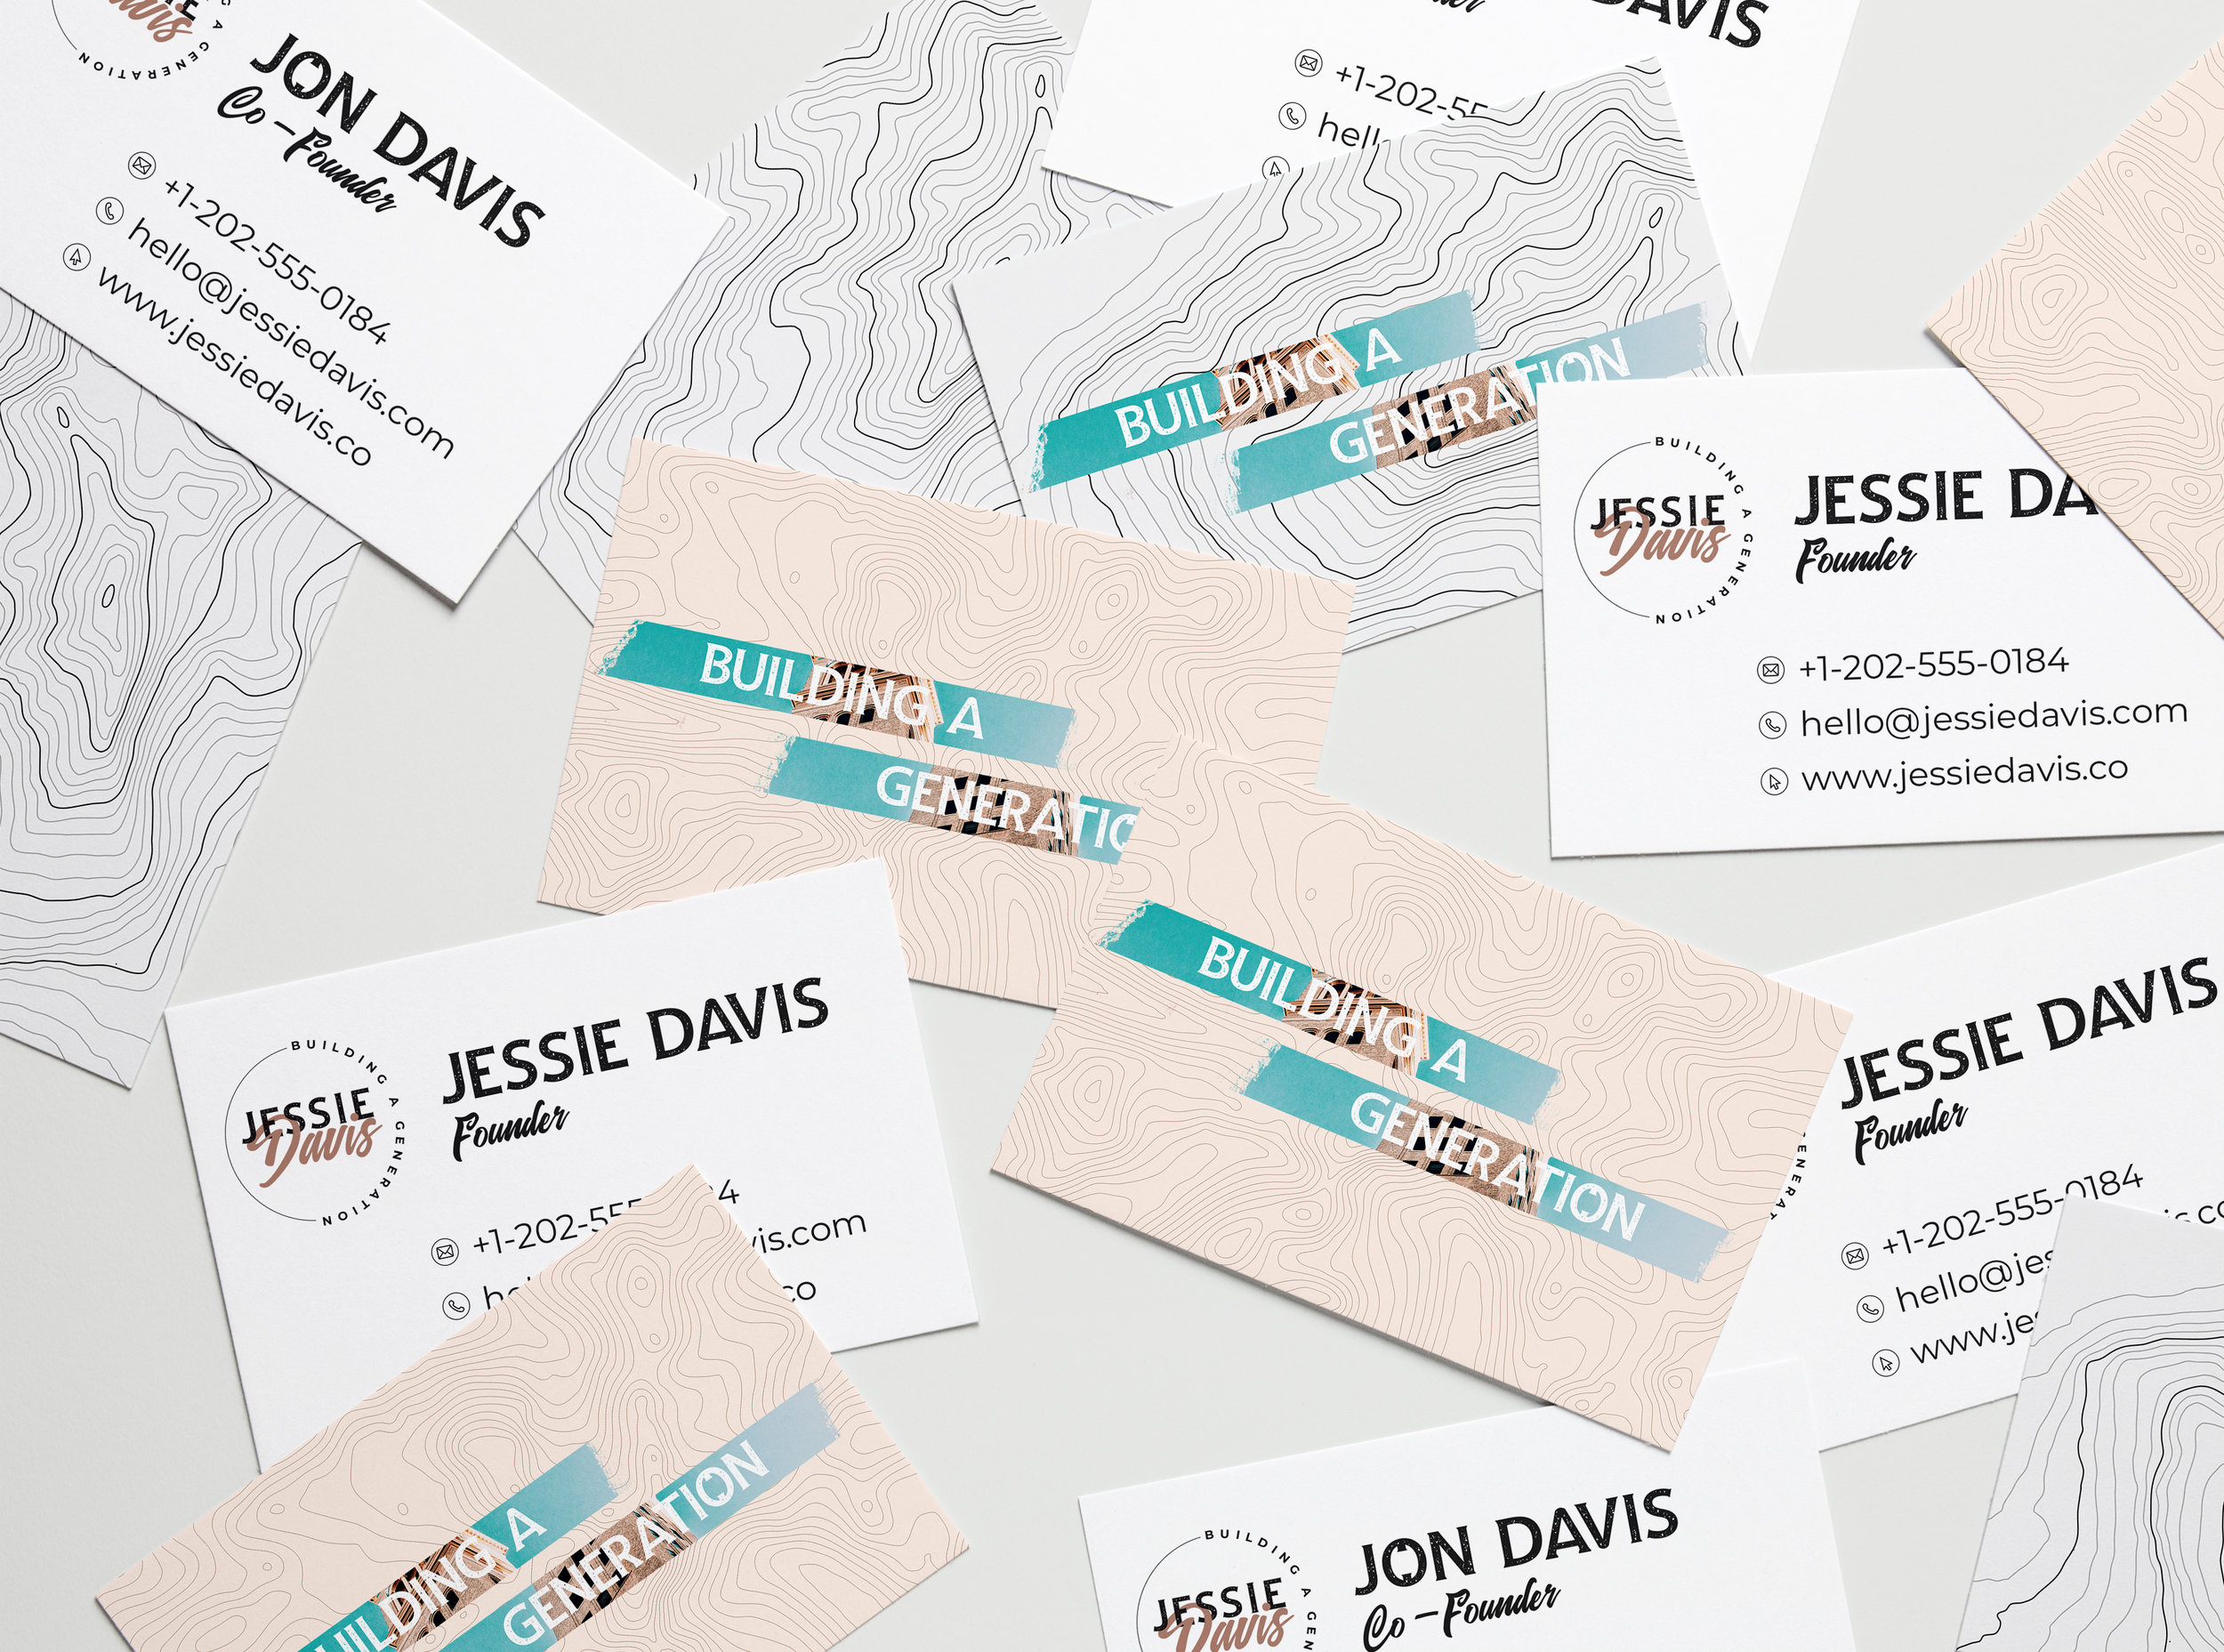 Realistic Business Cards MockUp 4.jpg